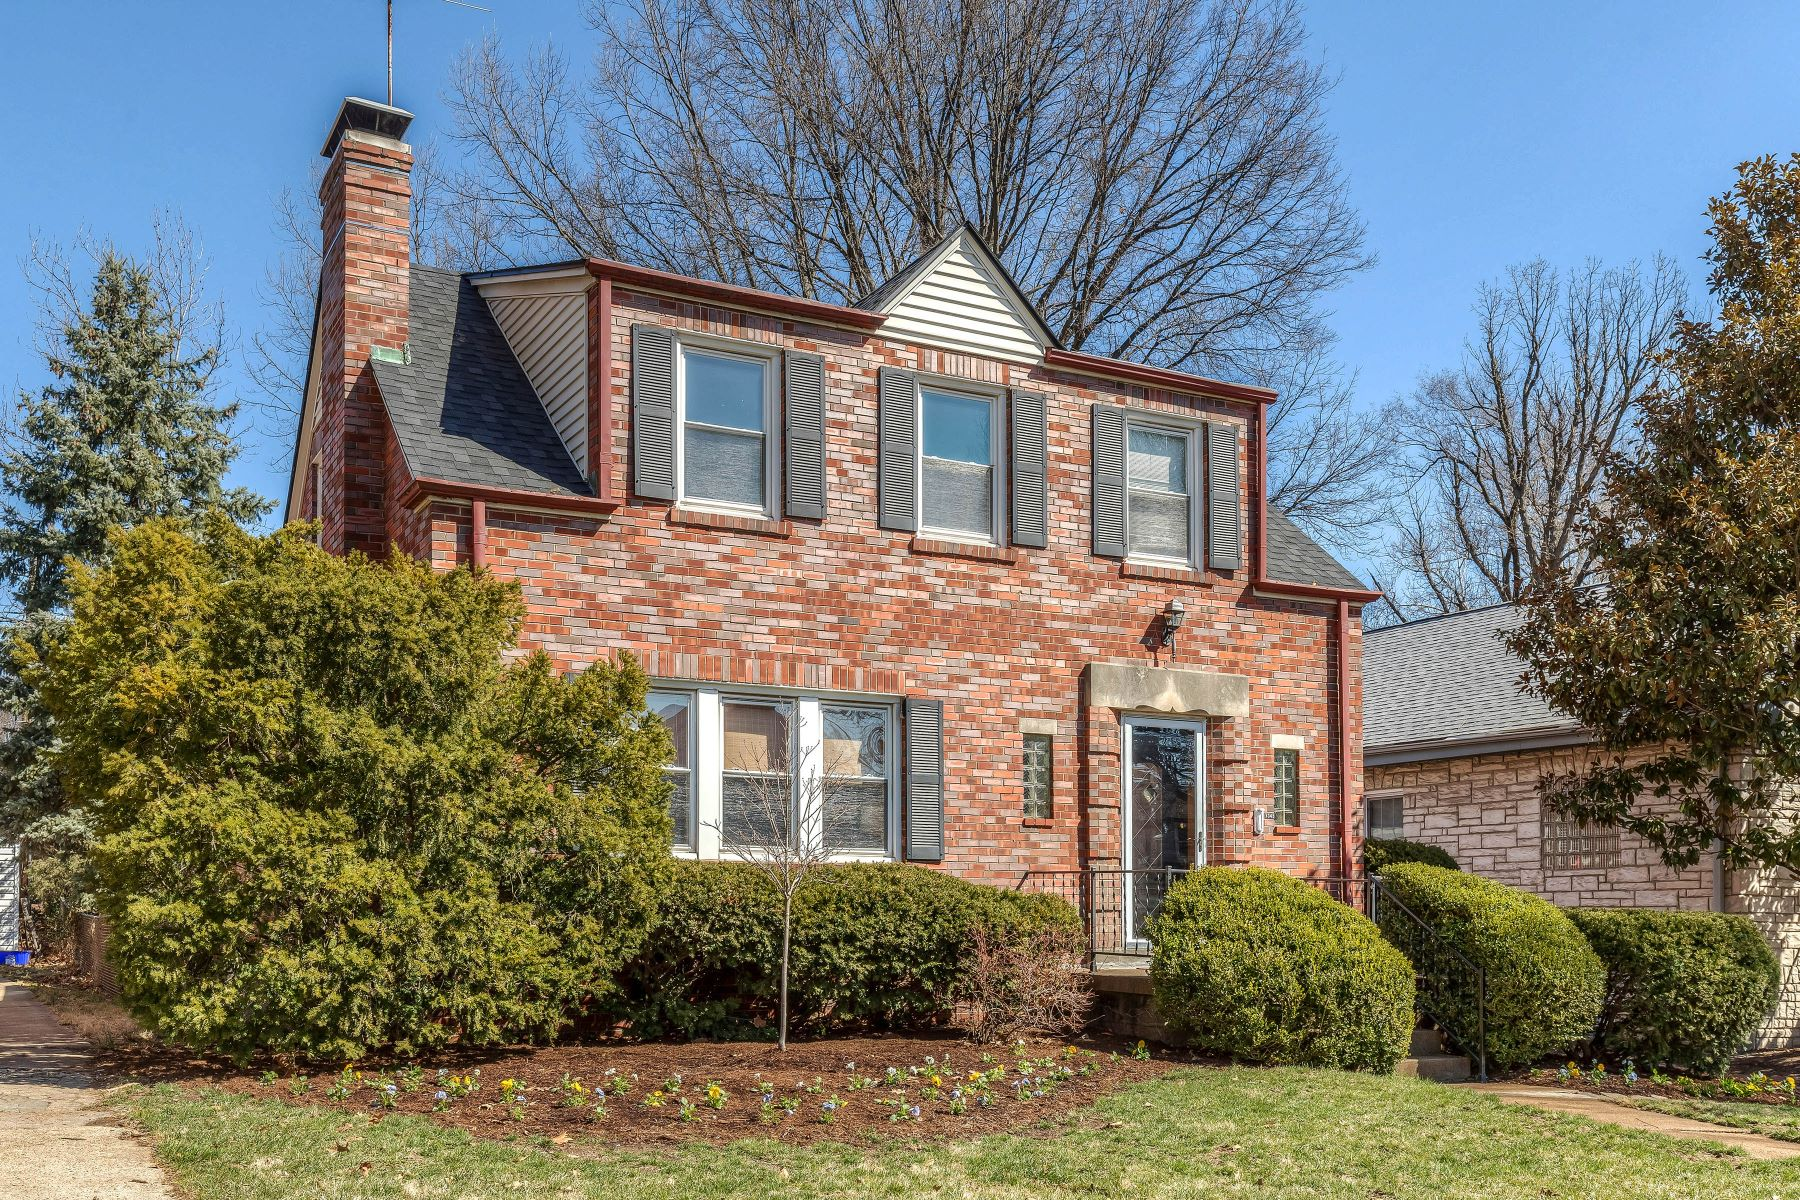 Single Family Home for Sale at Inviting University City Home 7345 Dorset Avenue University City, Missouri 63130 United States